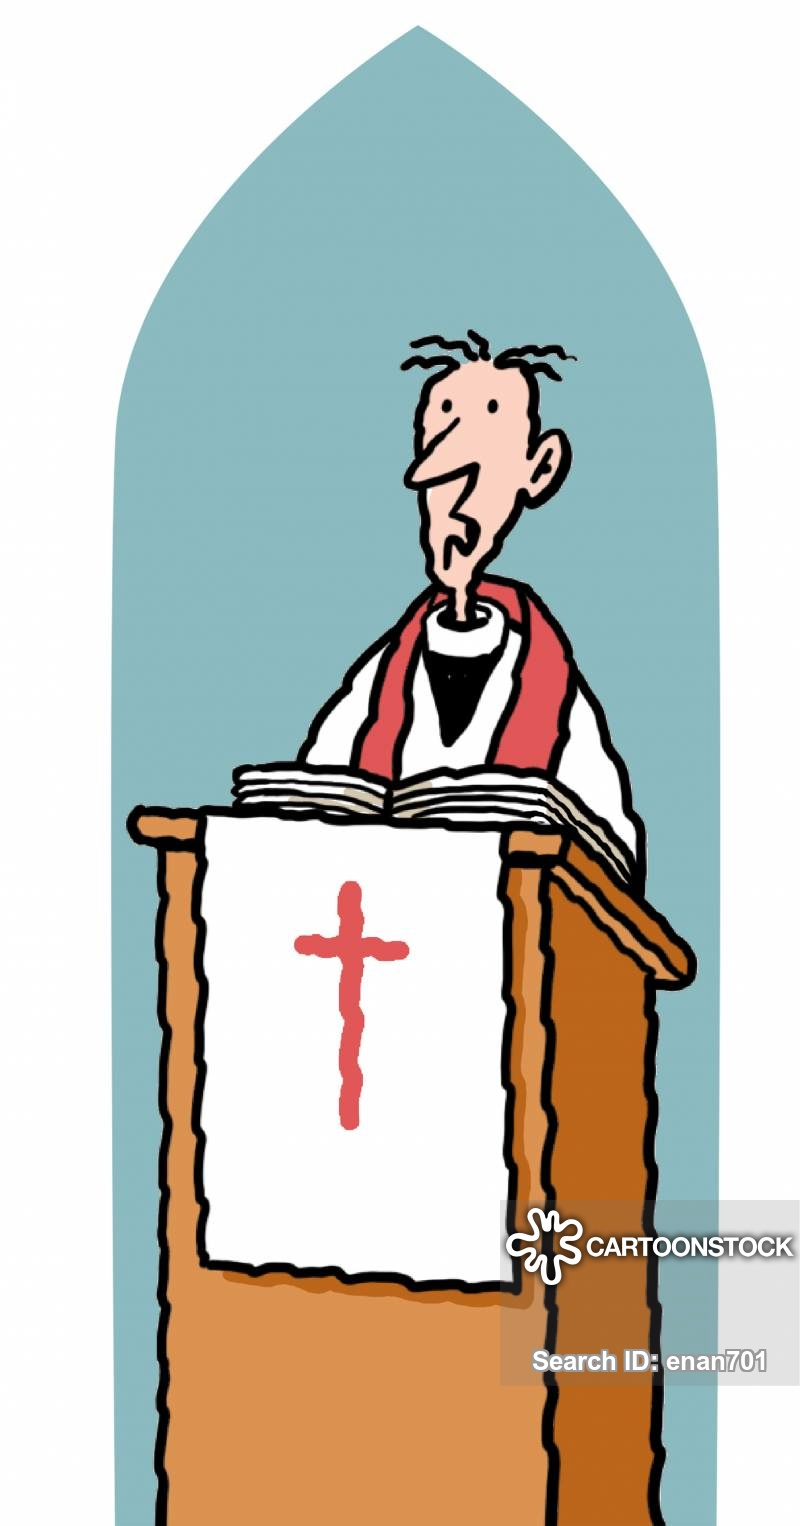 Devil at the pulpit clipart freeuse download Pulpit Cartoons and Comics - funny pictures from CartoonStock freeuse download